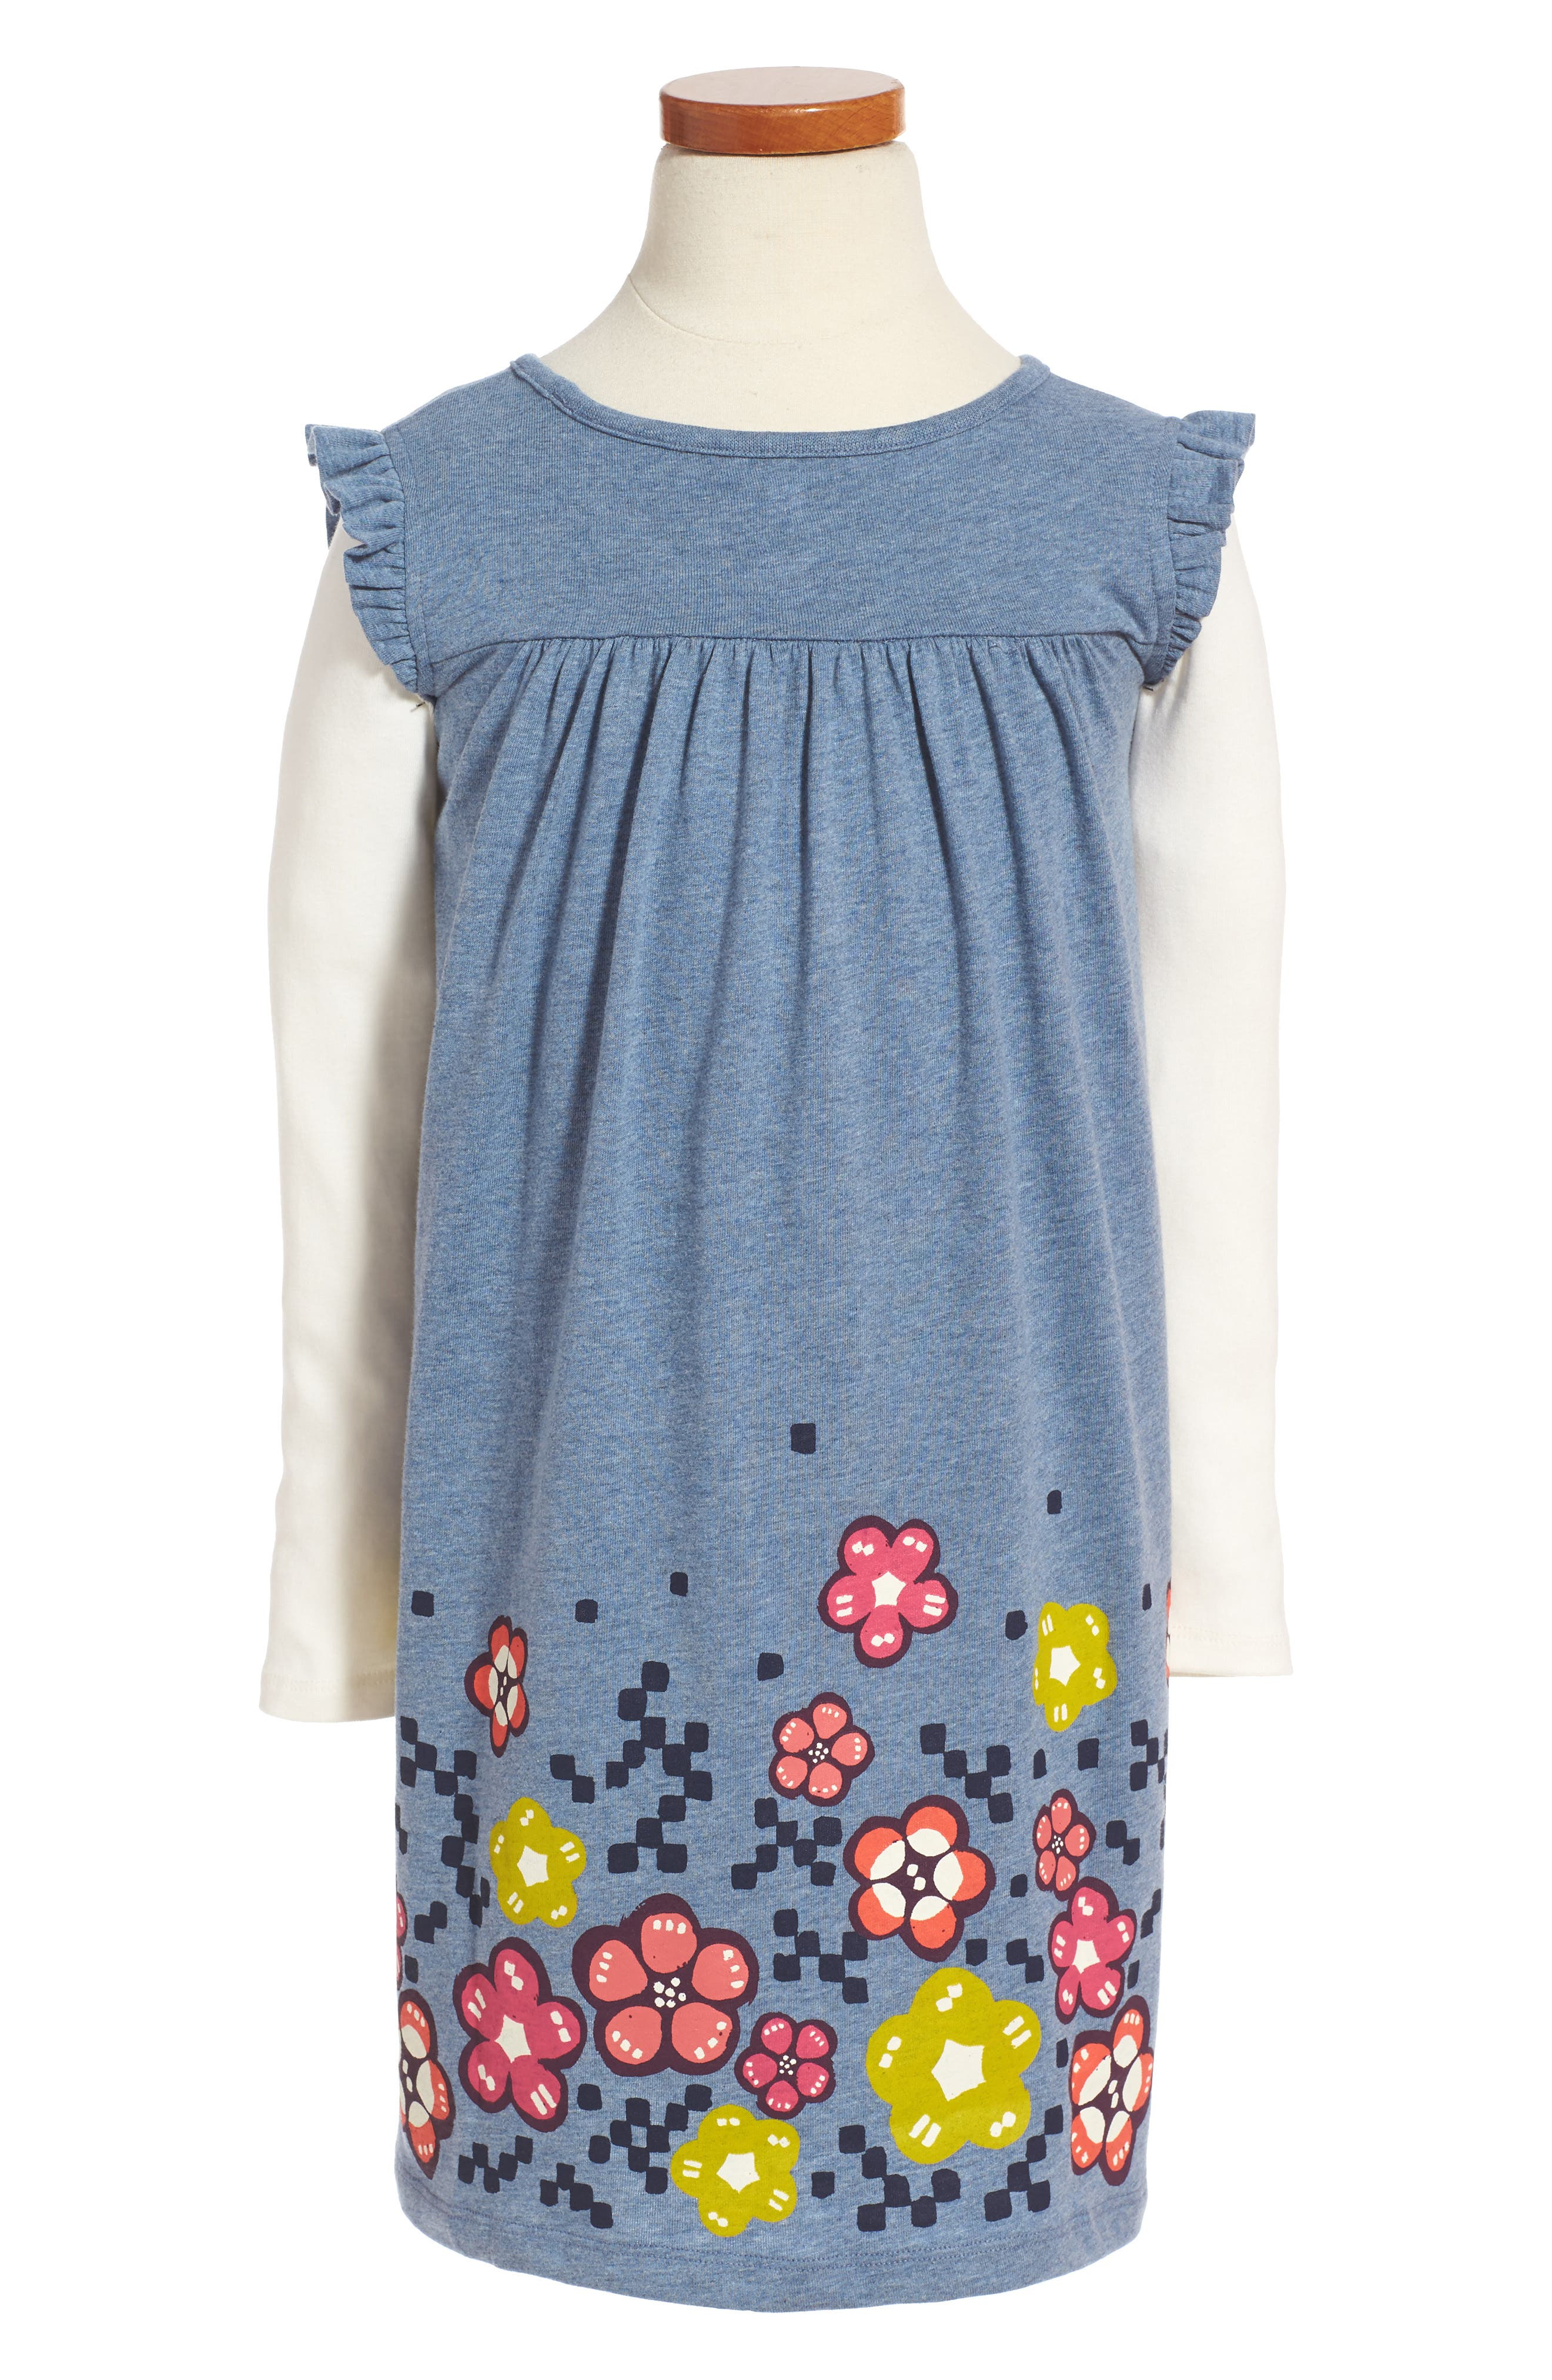 Alternate Image 1 Selected - Tea Collection Mackintosh Mighty Dress (Toddler Girls, Little Girls & Big Girls)